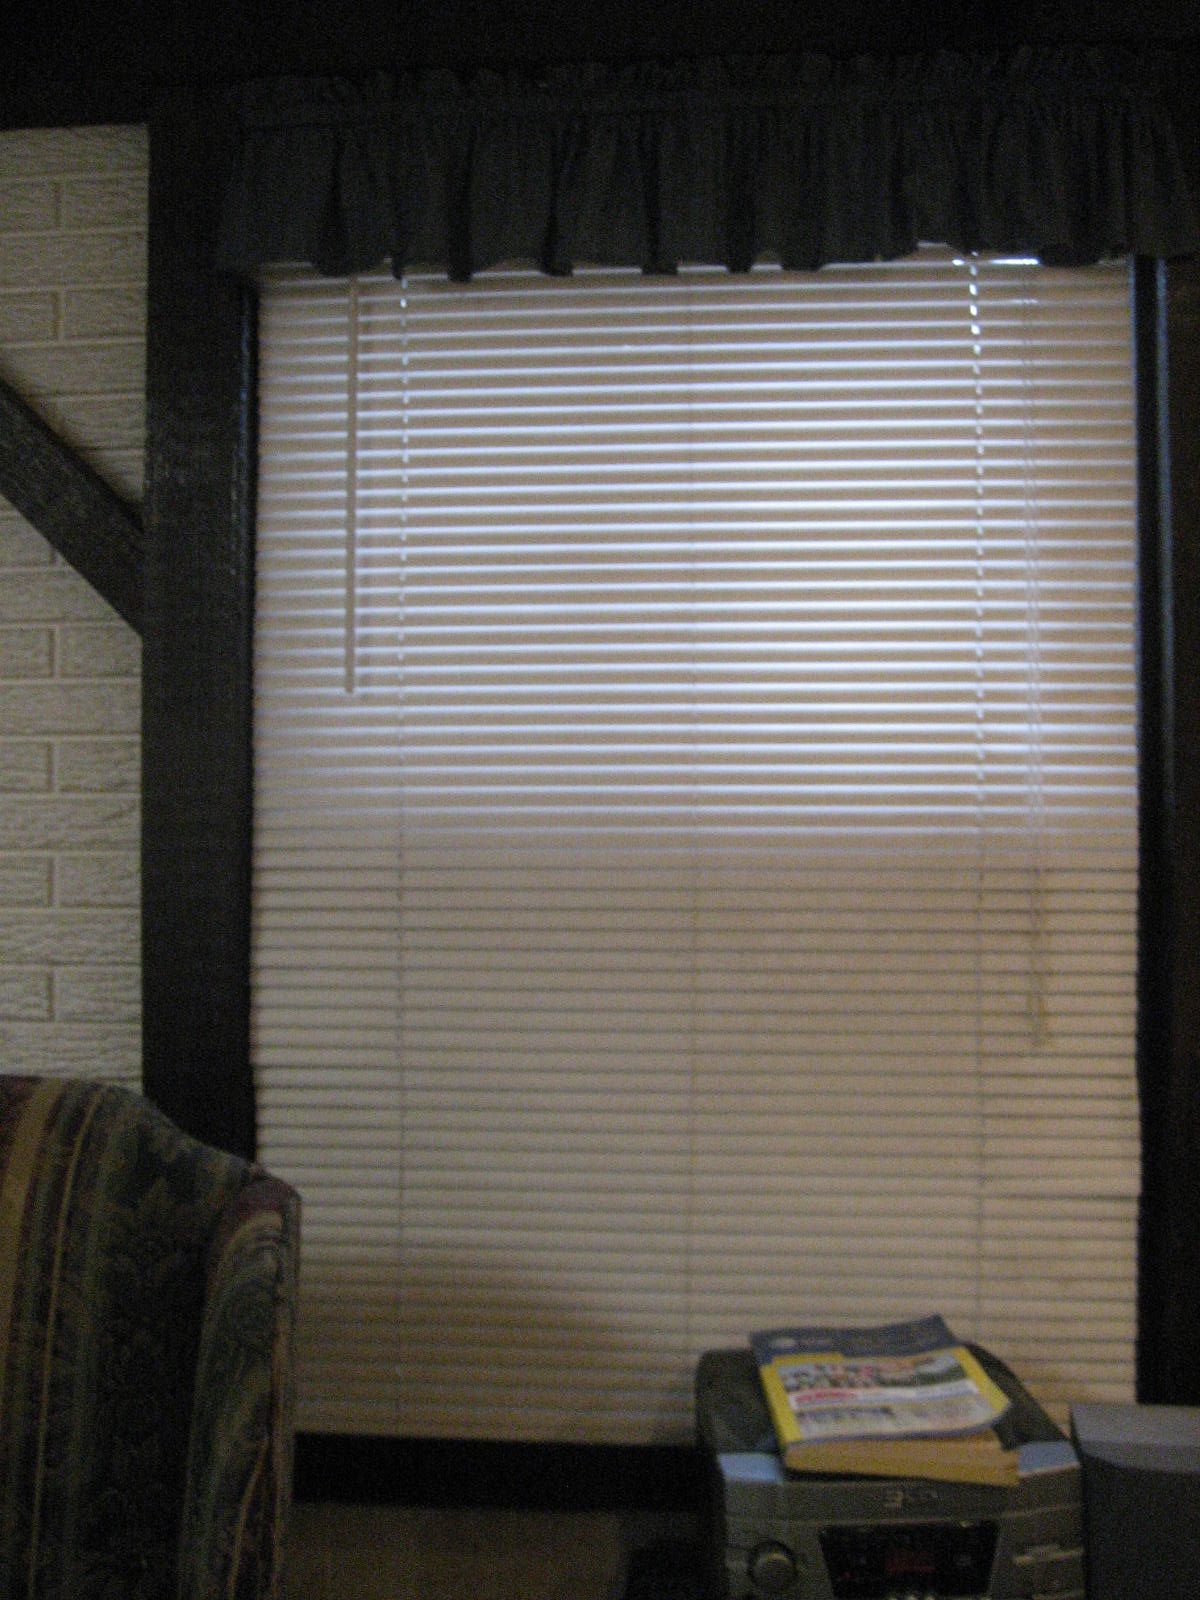 rubies running roman shades from old mini blinds